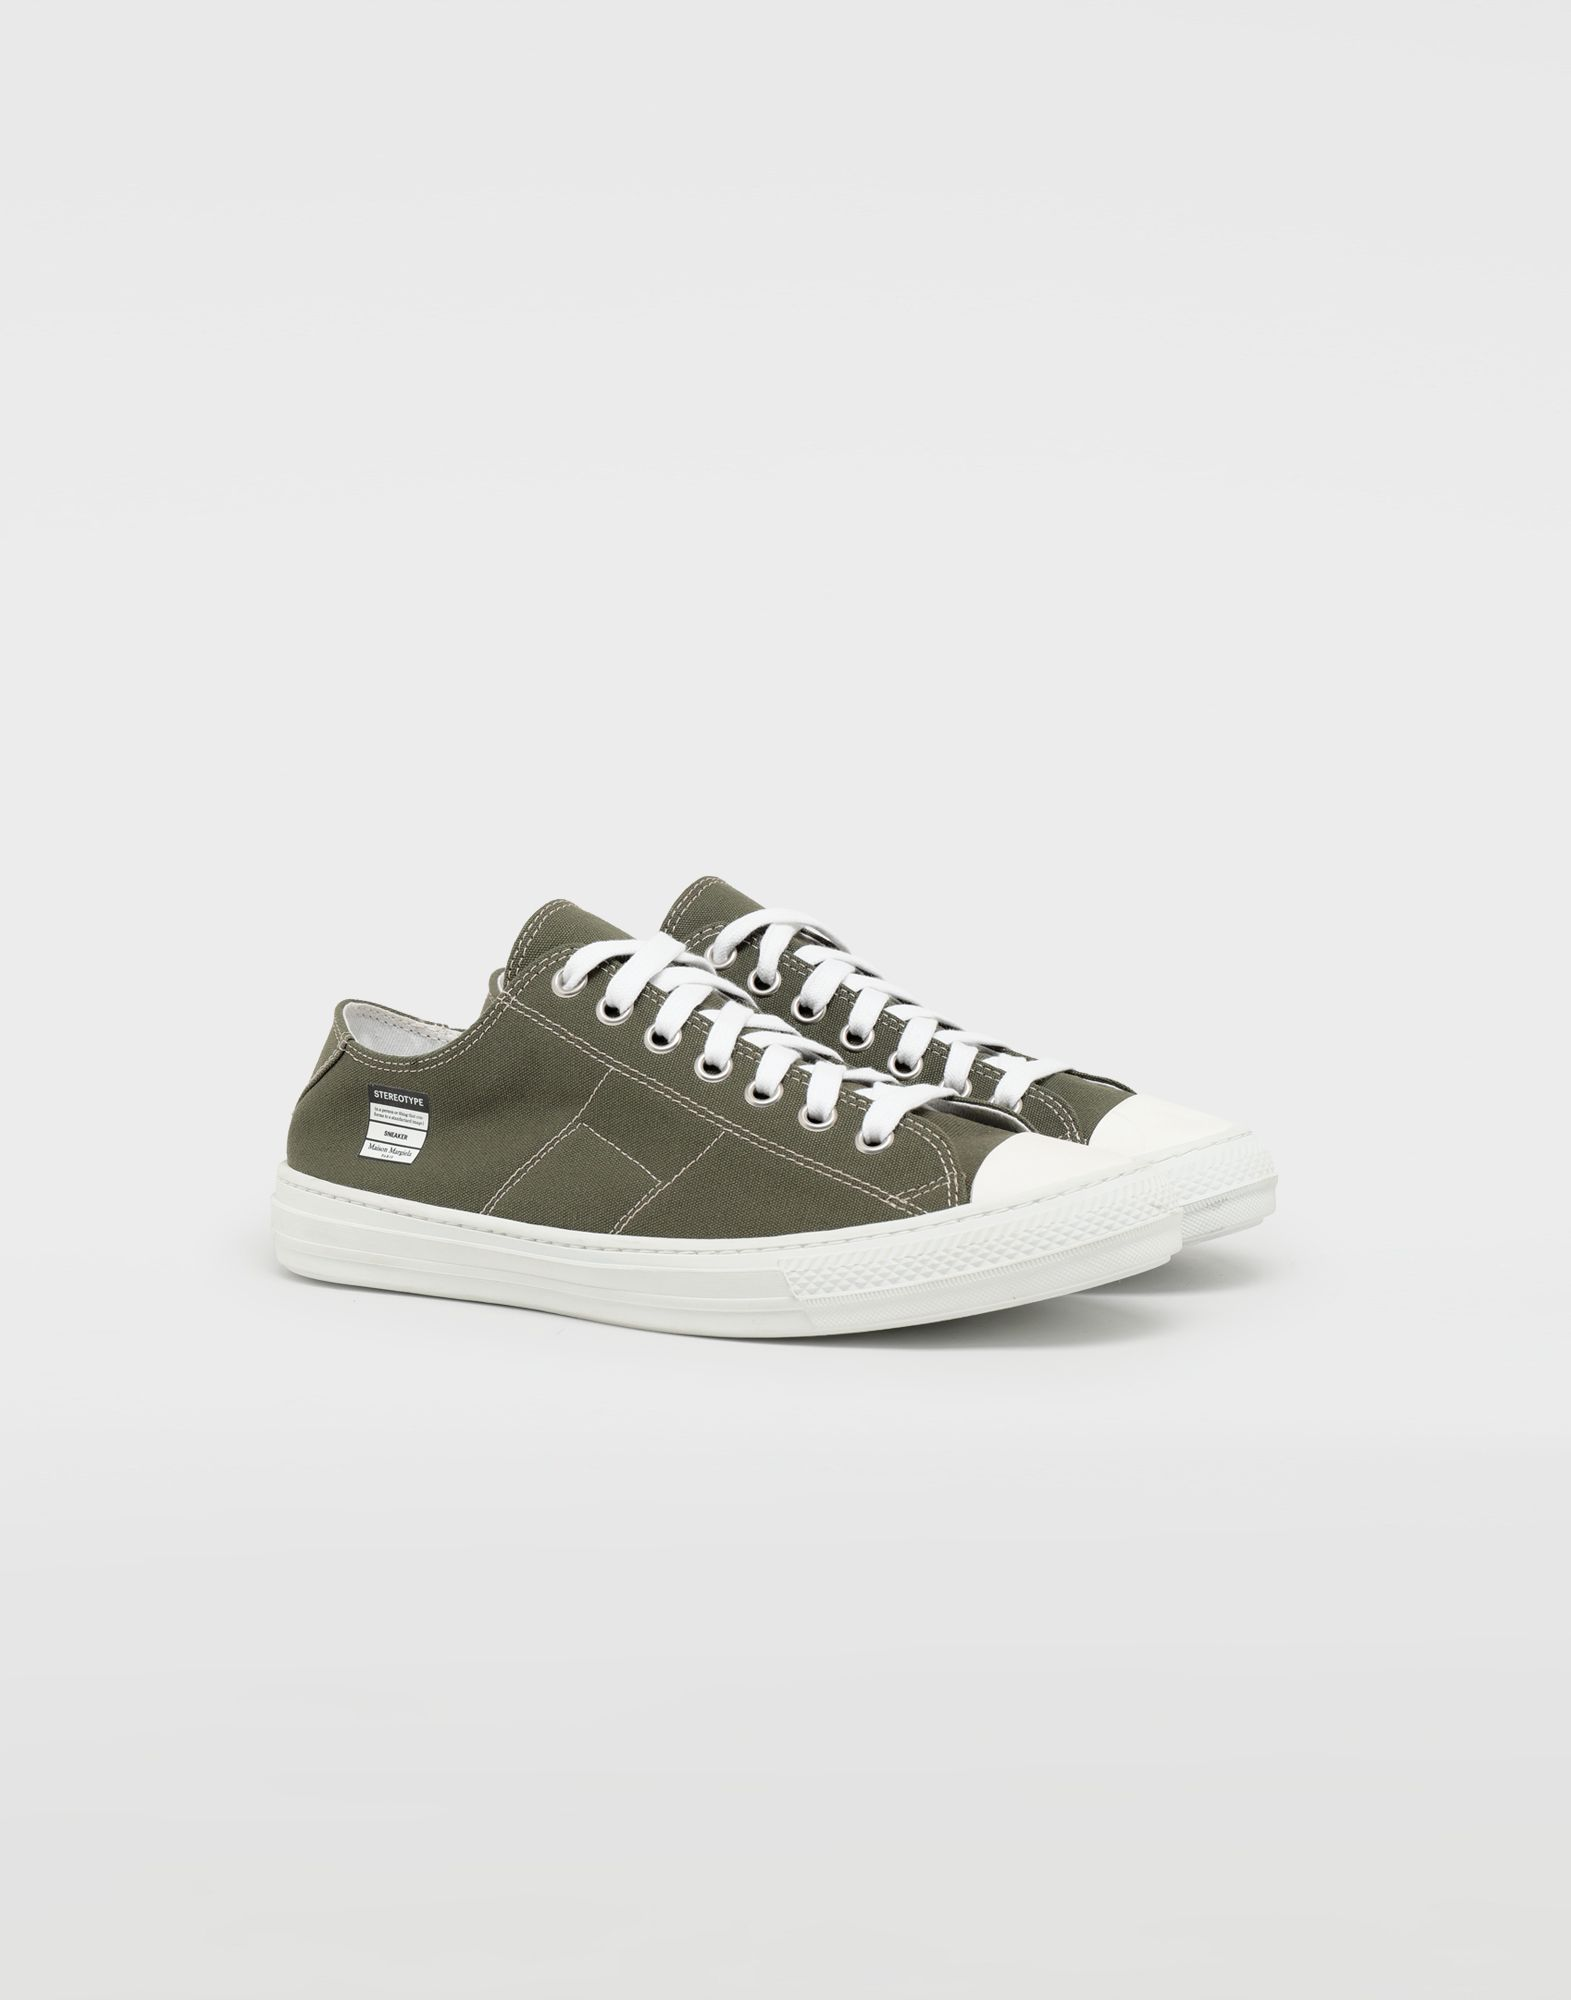 MAISON MARGIELA Stereotype low top sneakers Sneakers Man r